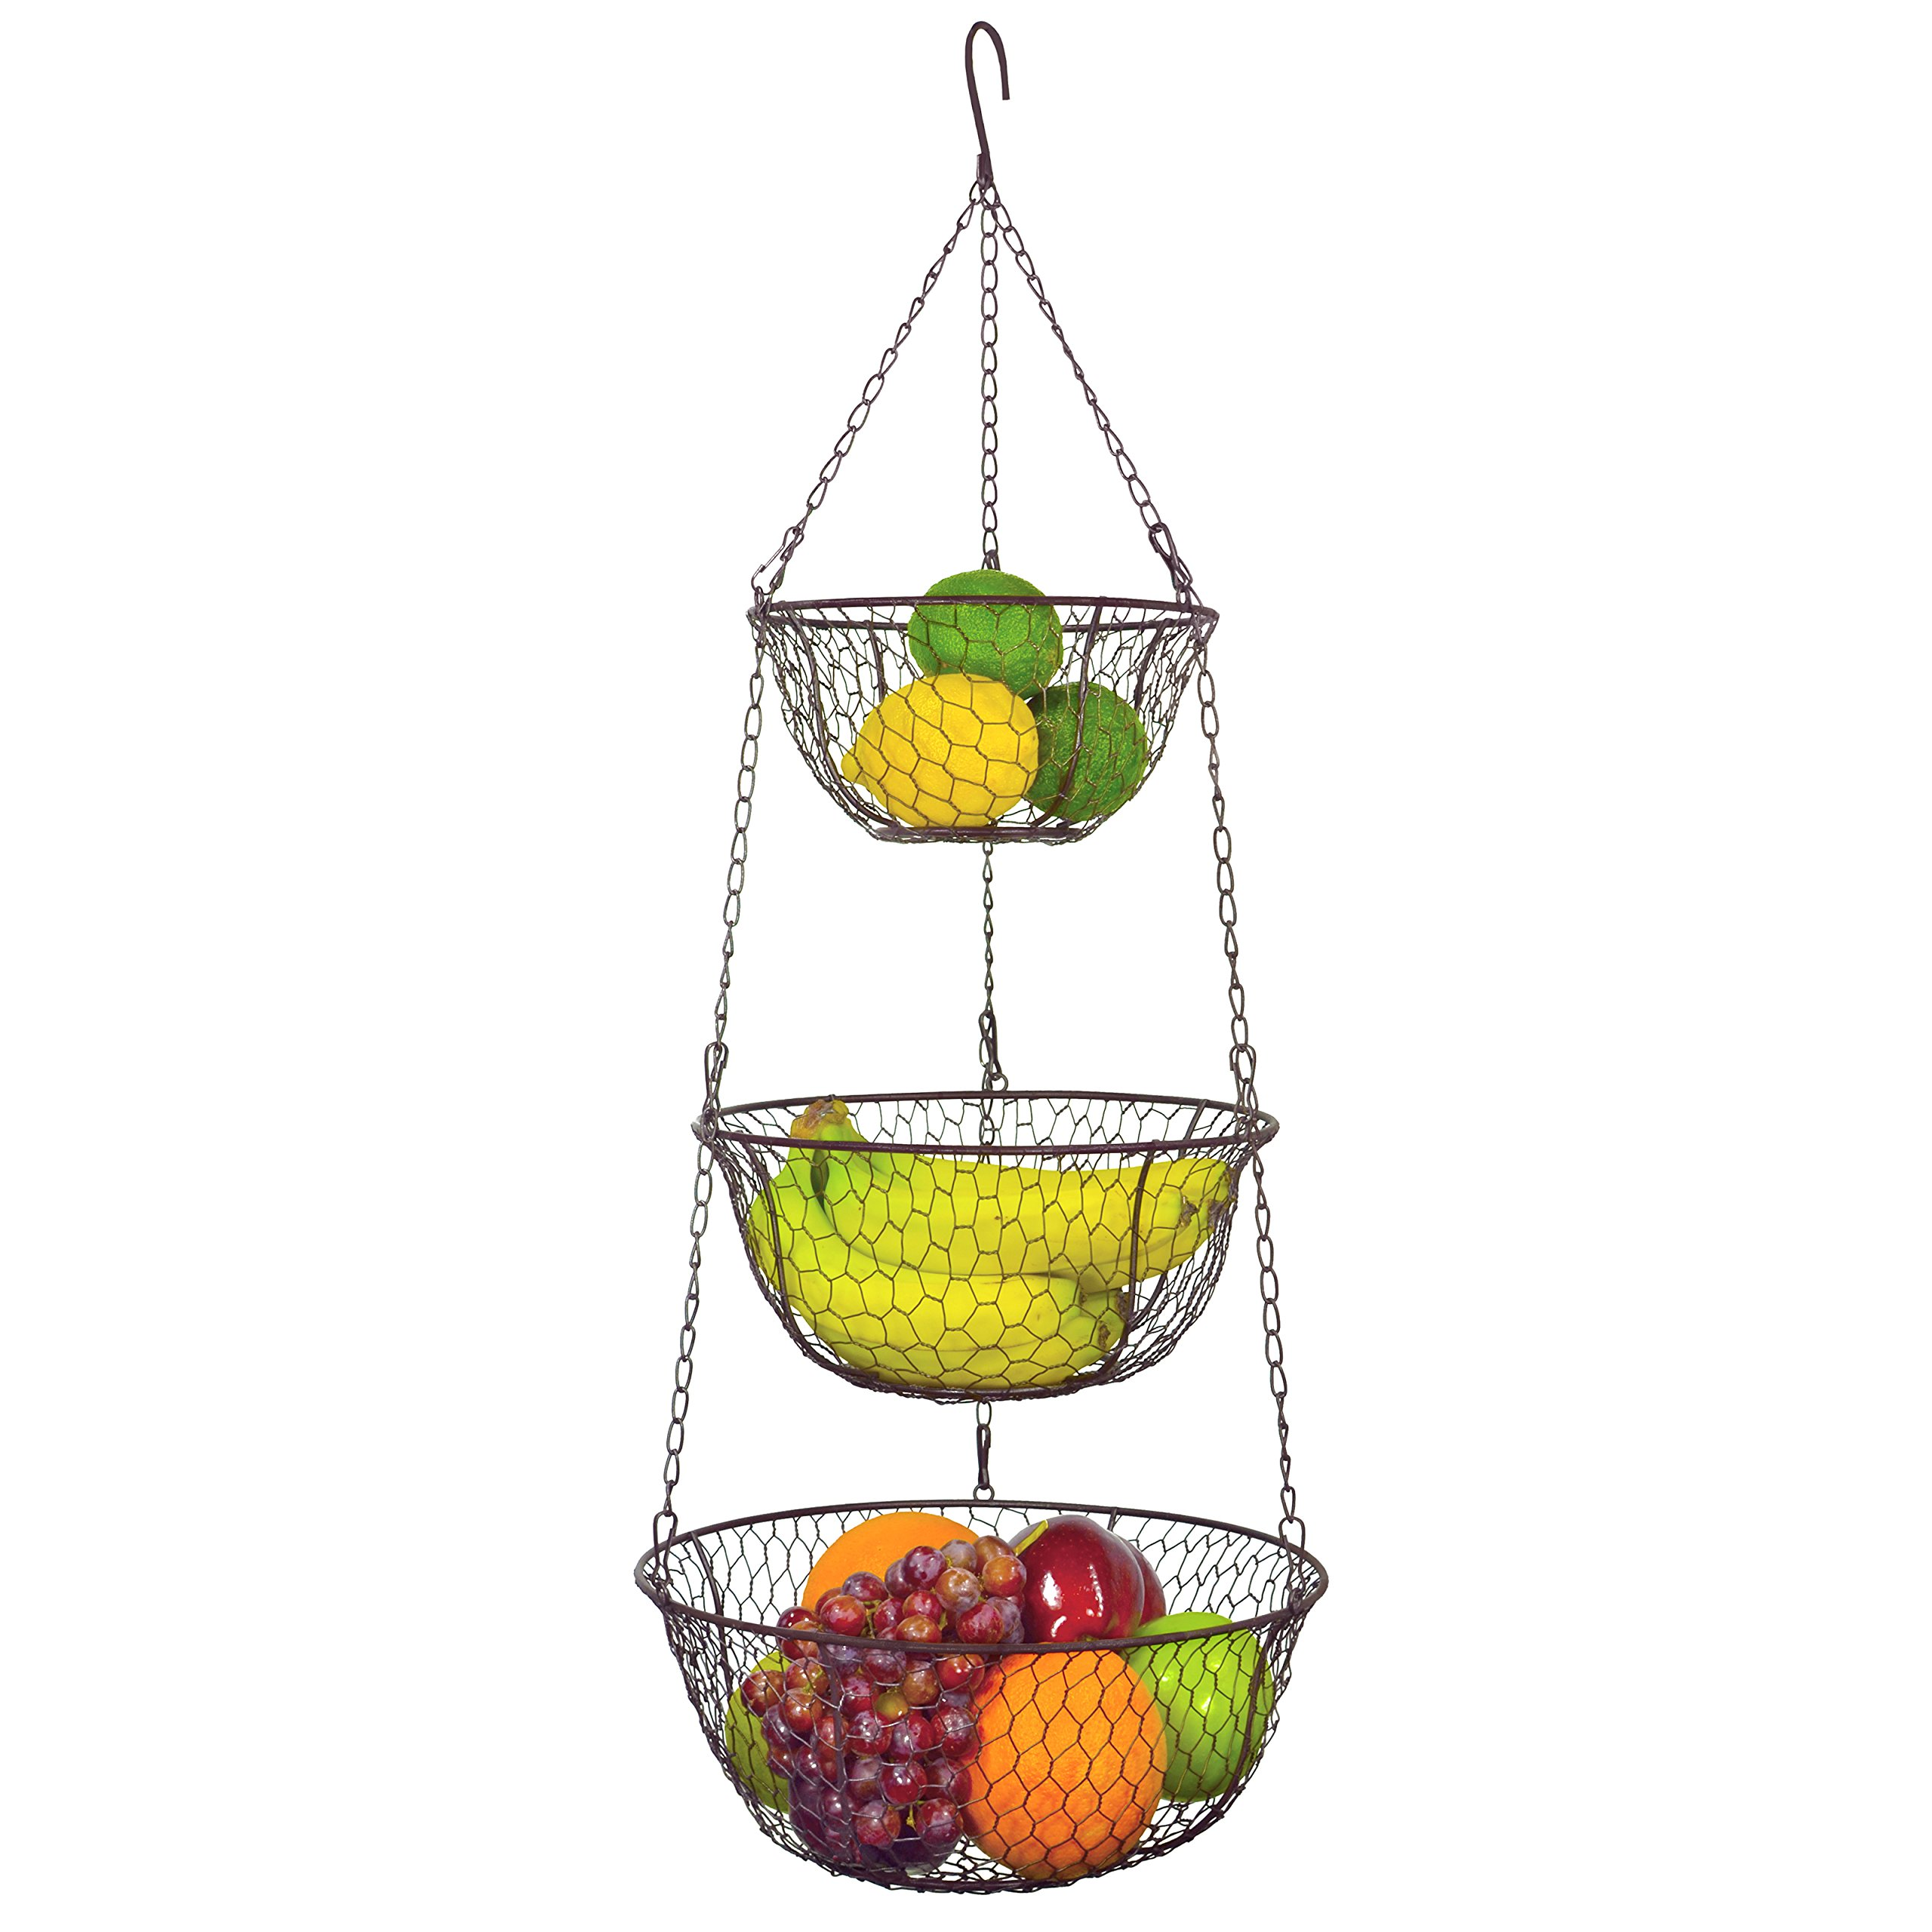 MyGift 3 Tier Chain Hanging Space Saving Rustic Country Style Chicken Wire Fruits / Produce / Plants Storage Baskets